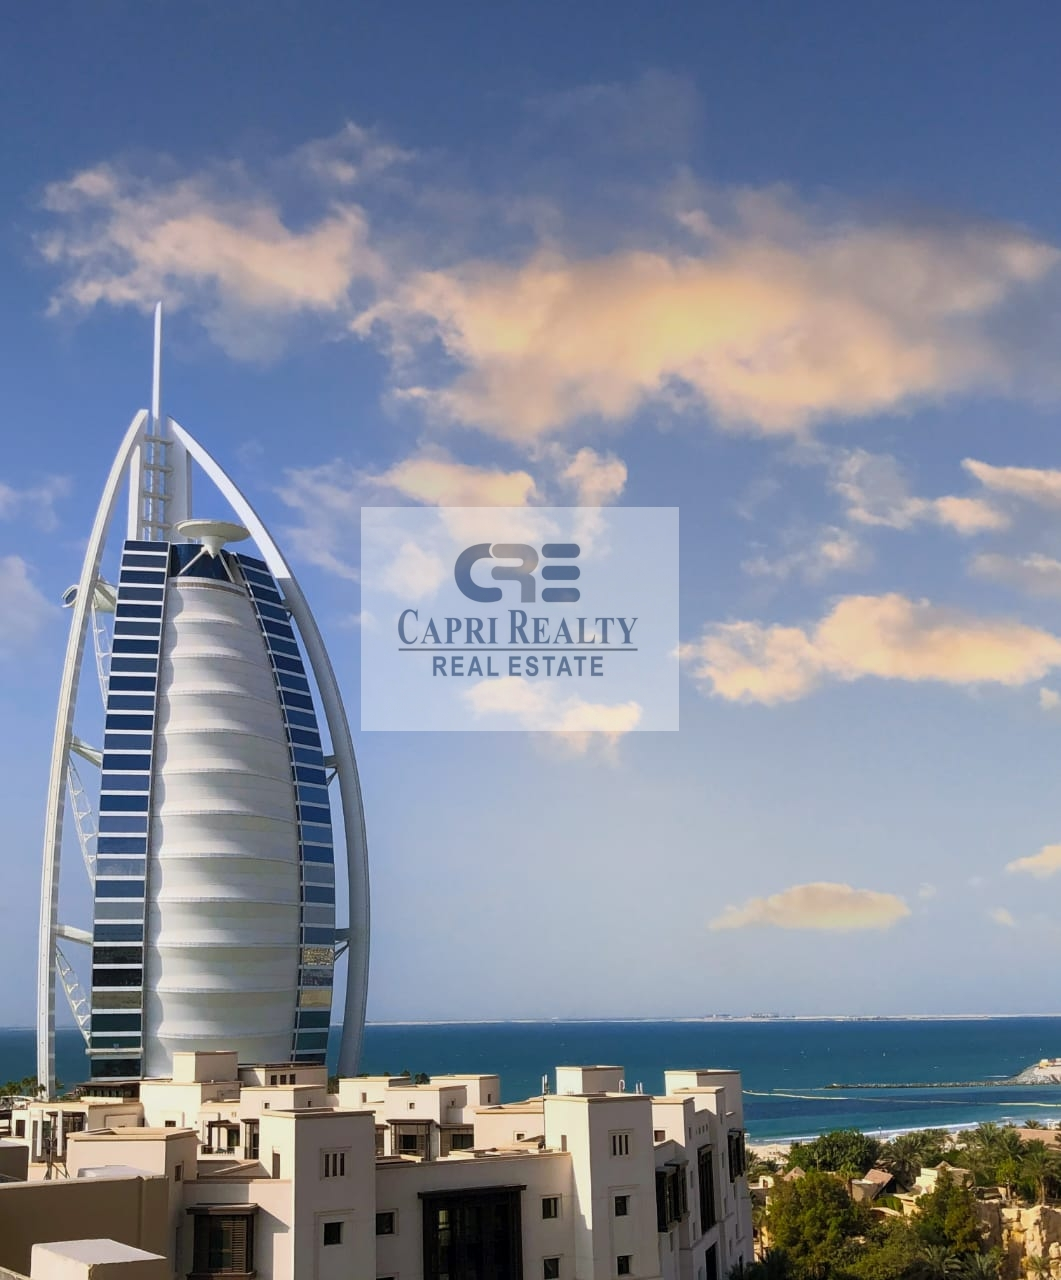 Pay 50% in 2 years| Opp Burj Al Arab View